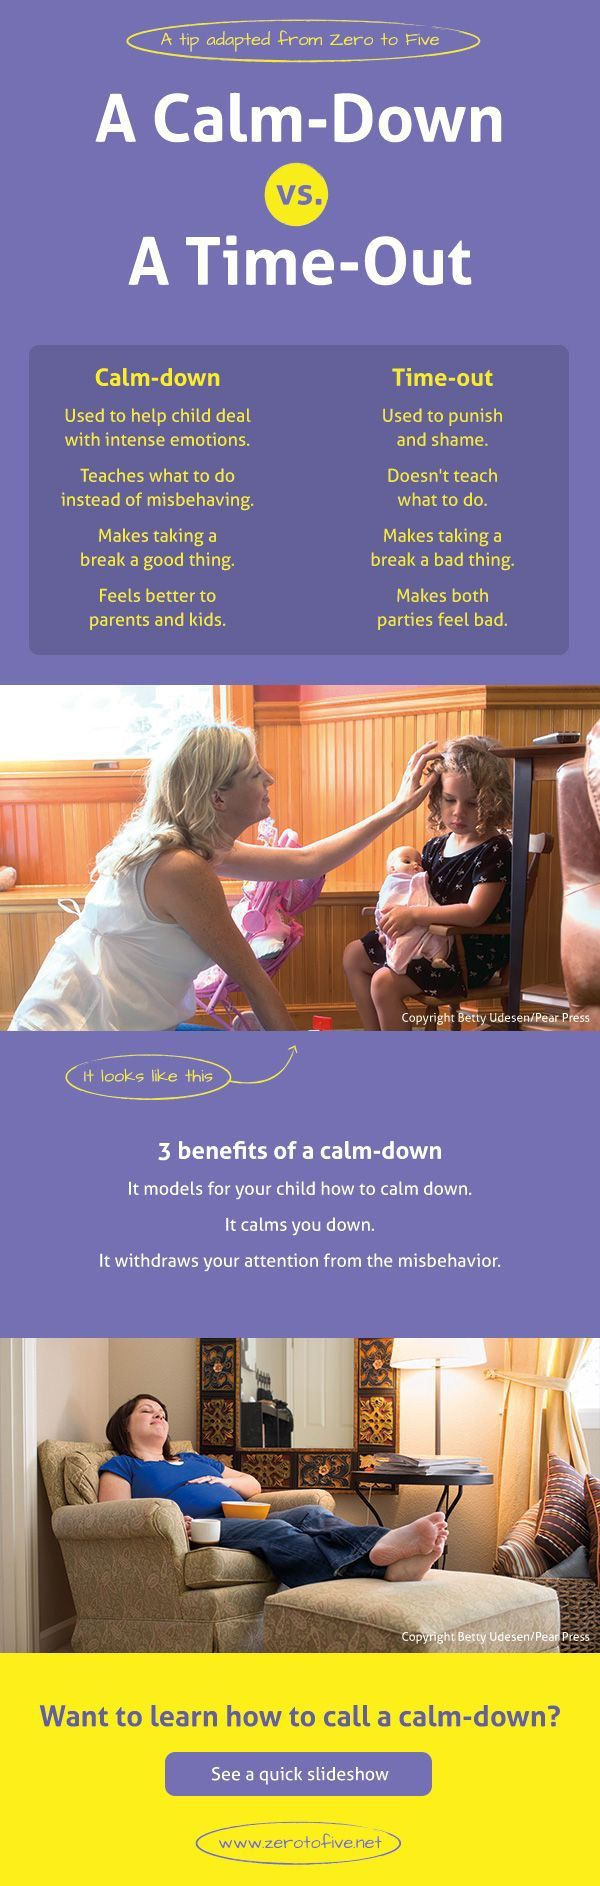 Time-outs are used to punish and shame, but a calm-down helps kids deal with intense emotions. Calm-downs are a healthy and positive discipline approach for both parents and children. Love this guide for parents!